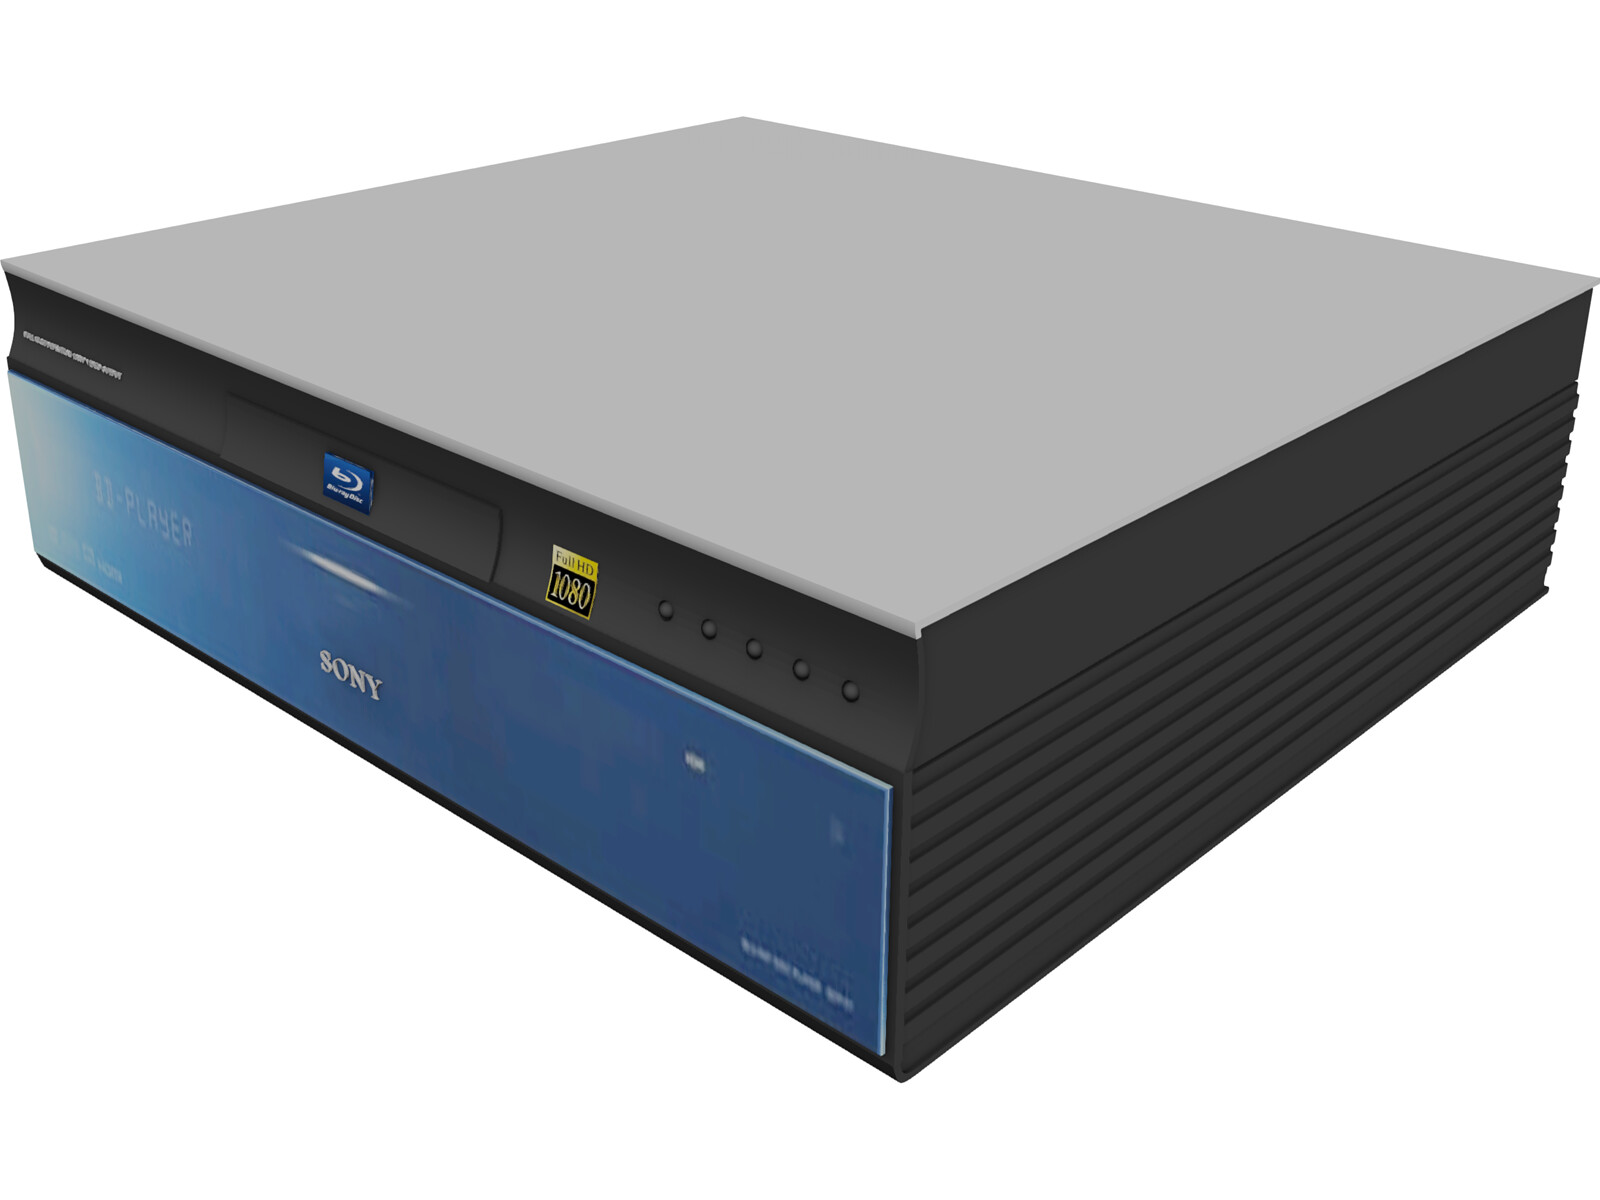 Sony Blu-ray Player 3D Model - 3D CAD Browser